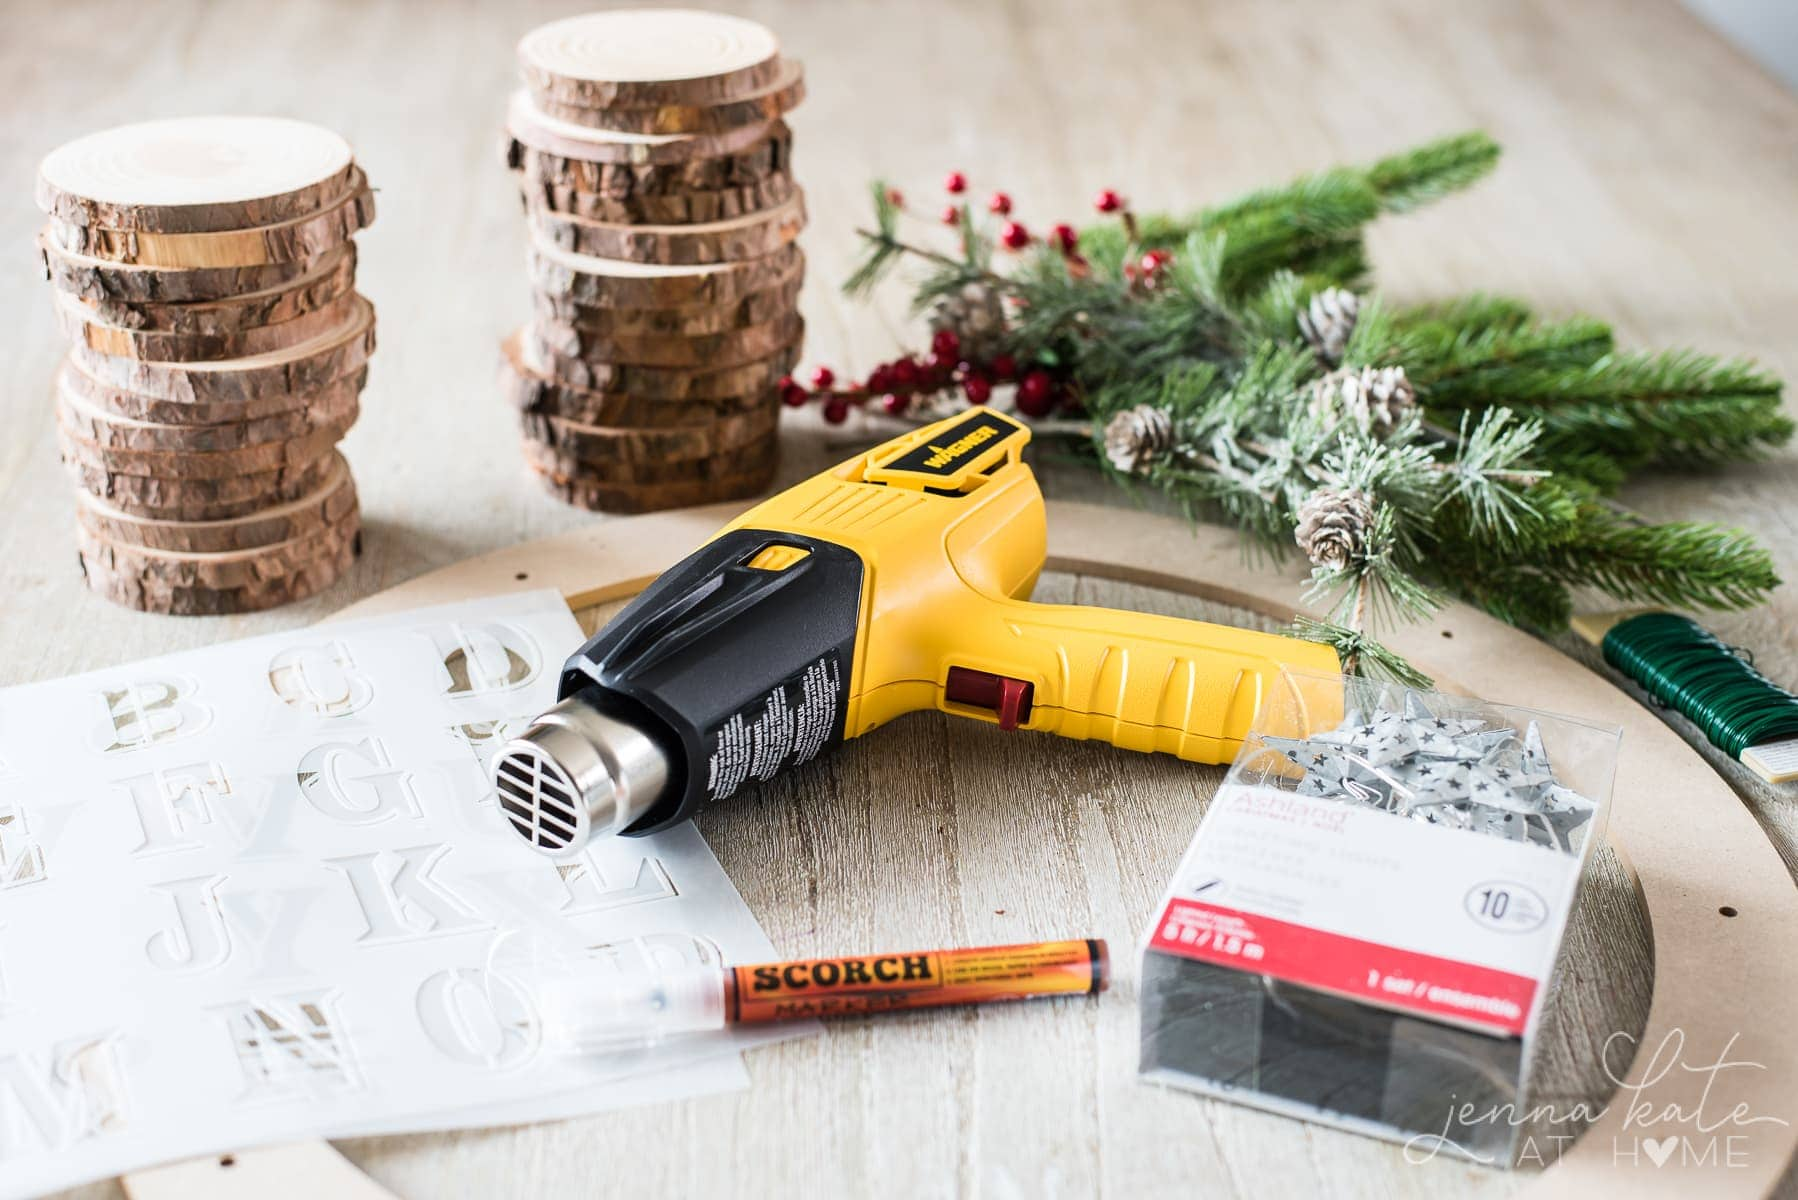 Materials needed for a wood slice wreath